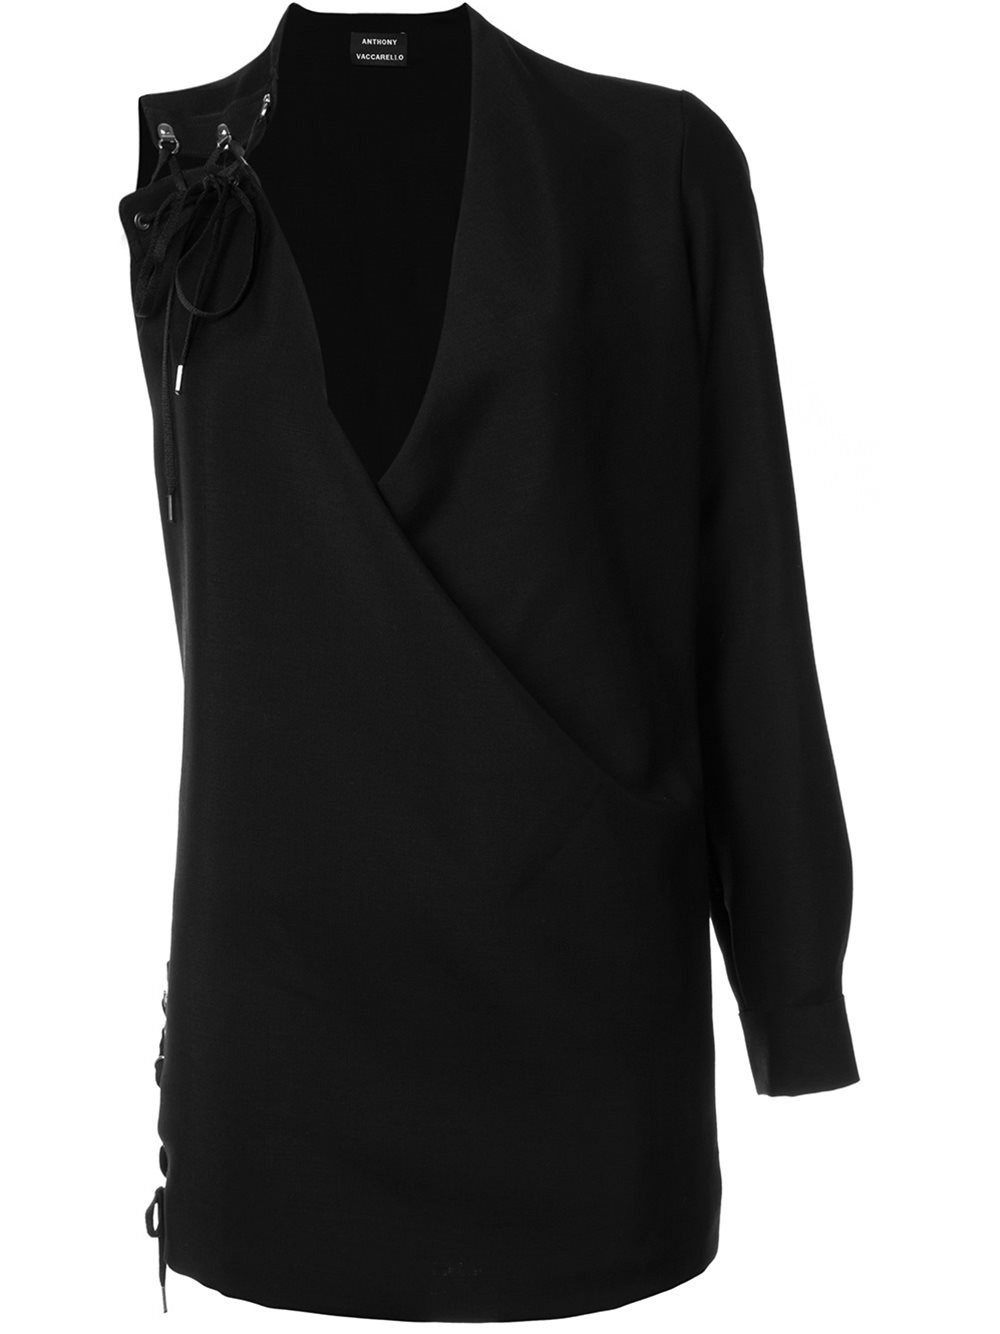 ANTHONY VACCARELLO One Sleeve Lace-Up Dress in Black